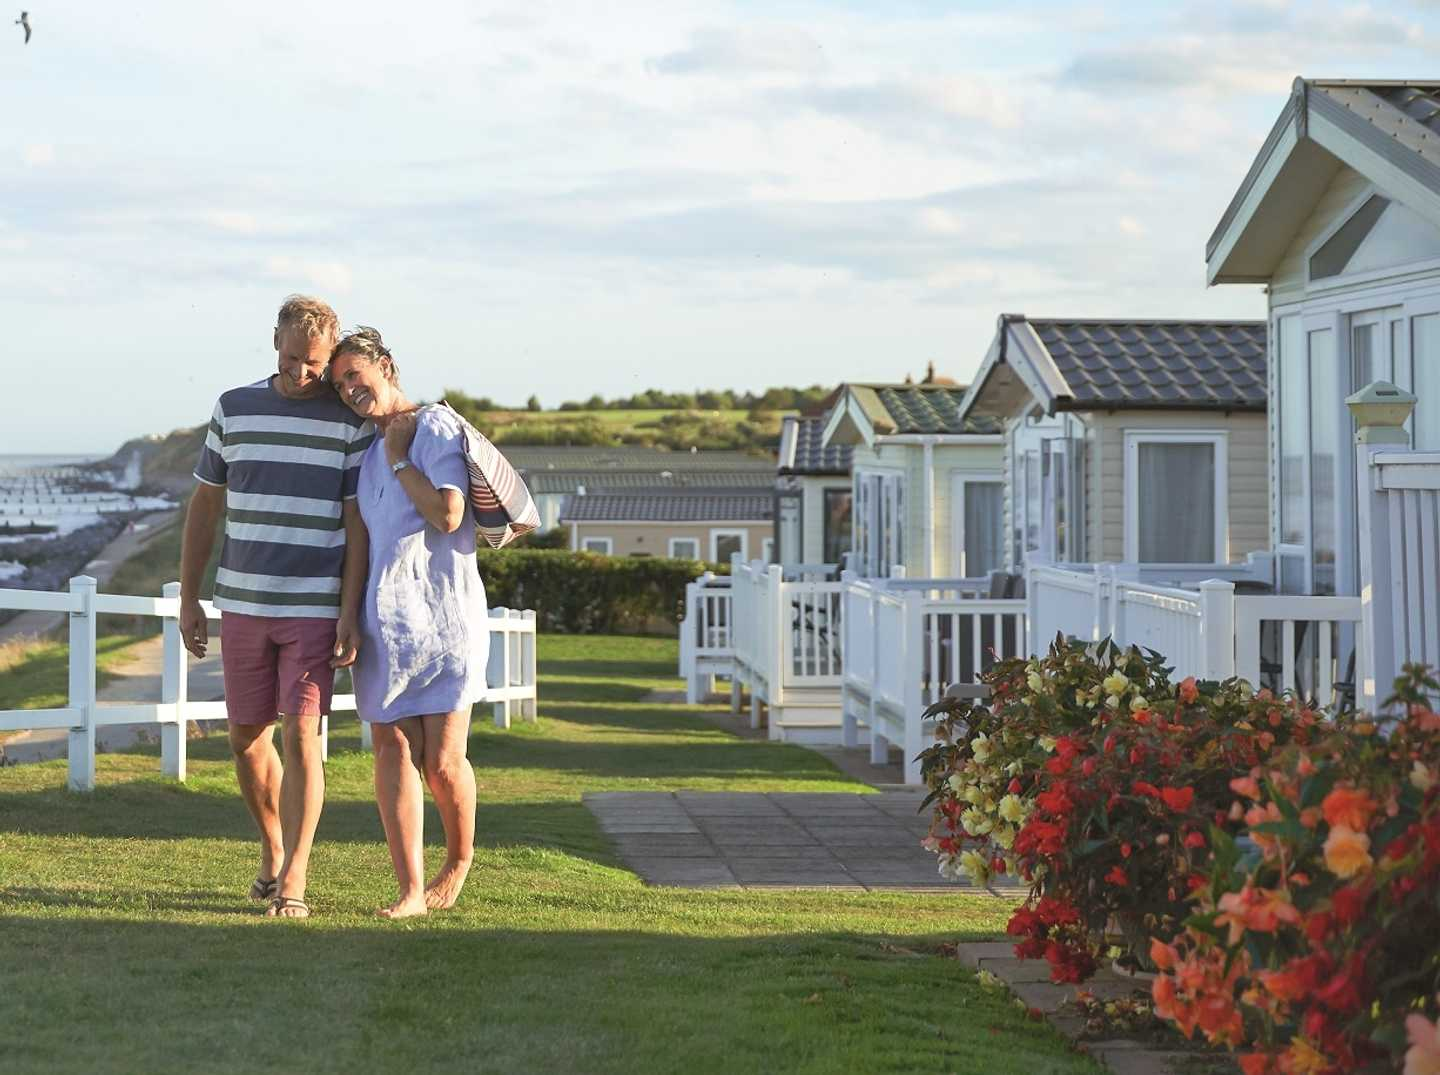 A couple strolling to Hopton's beach